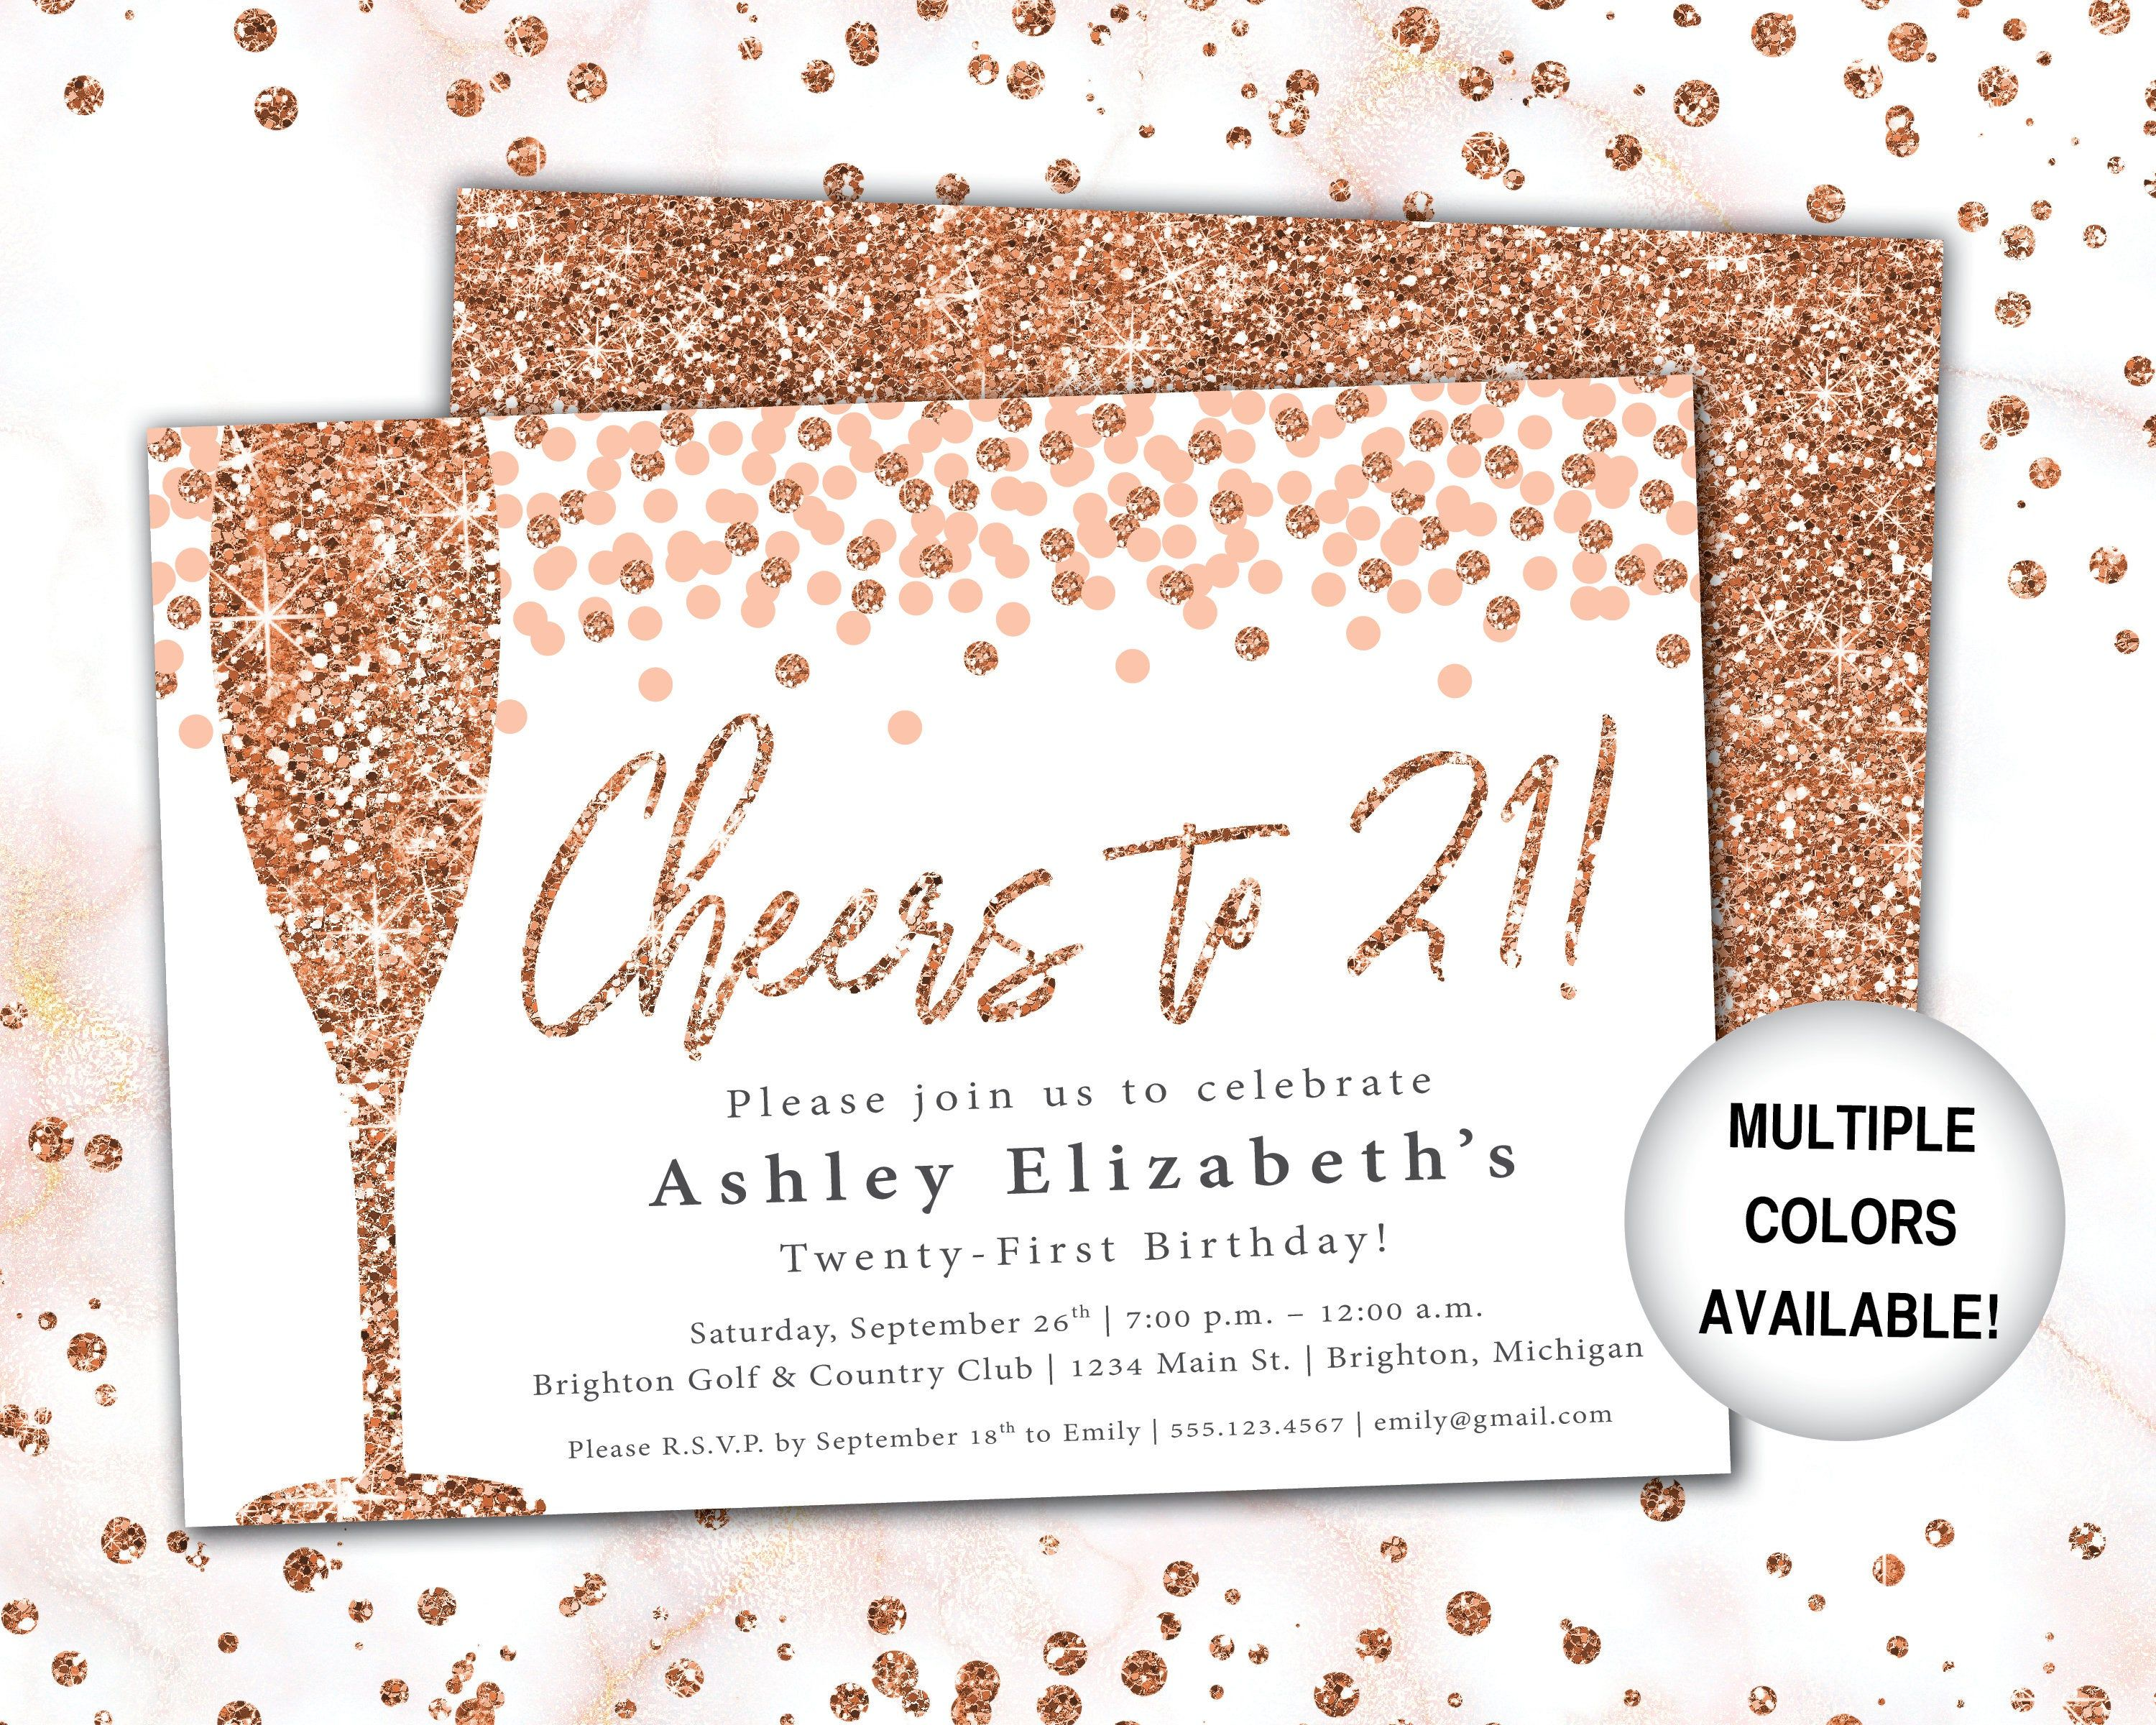 Cheers to 4 Invitation Rose Gold Champagne 4st Birthday  Etsy